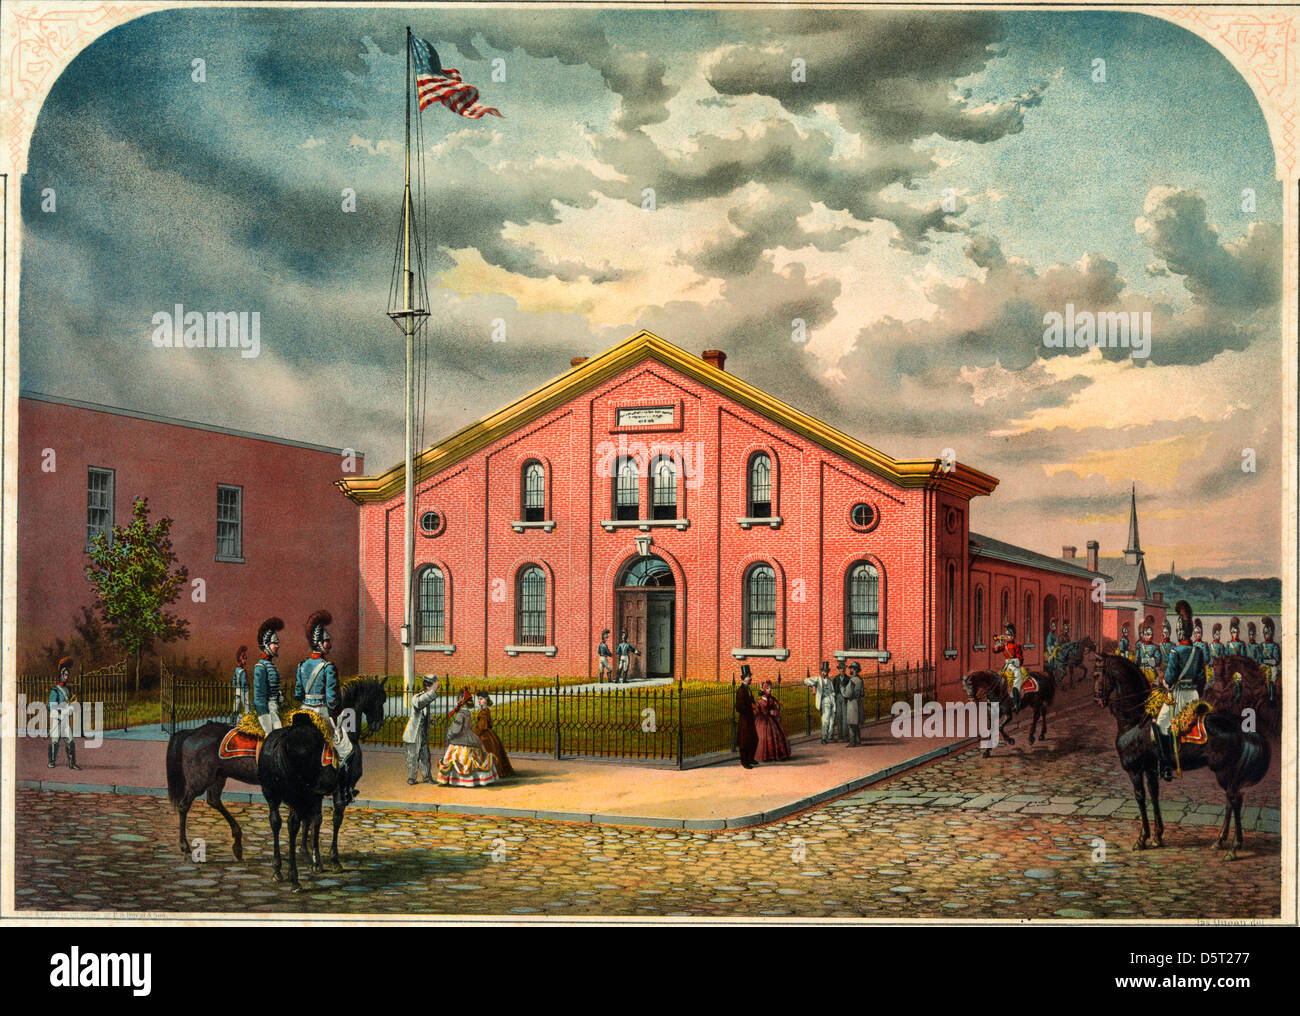 Armory of the First Troop Philadelphia City Cavalry, circa 1870 - Stock Image